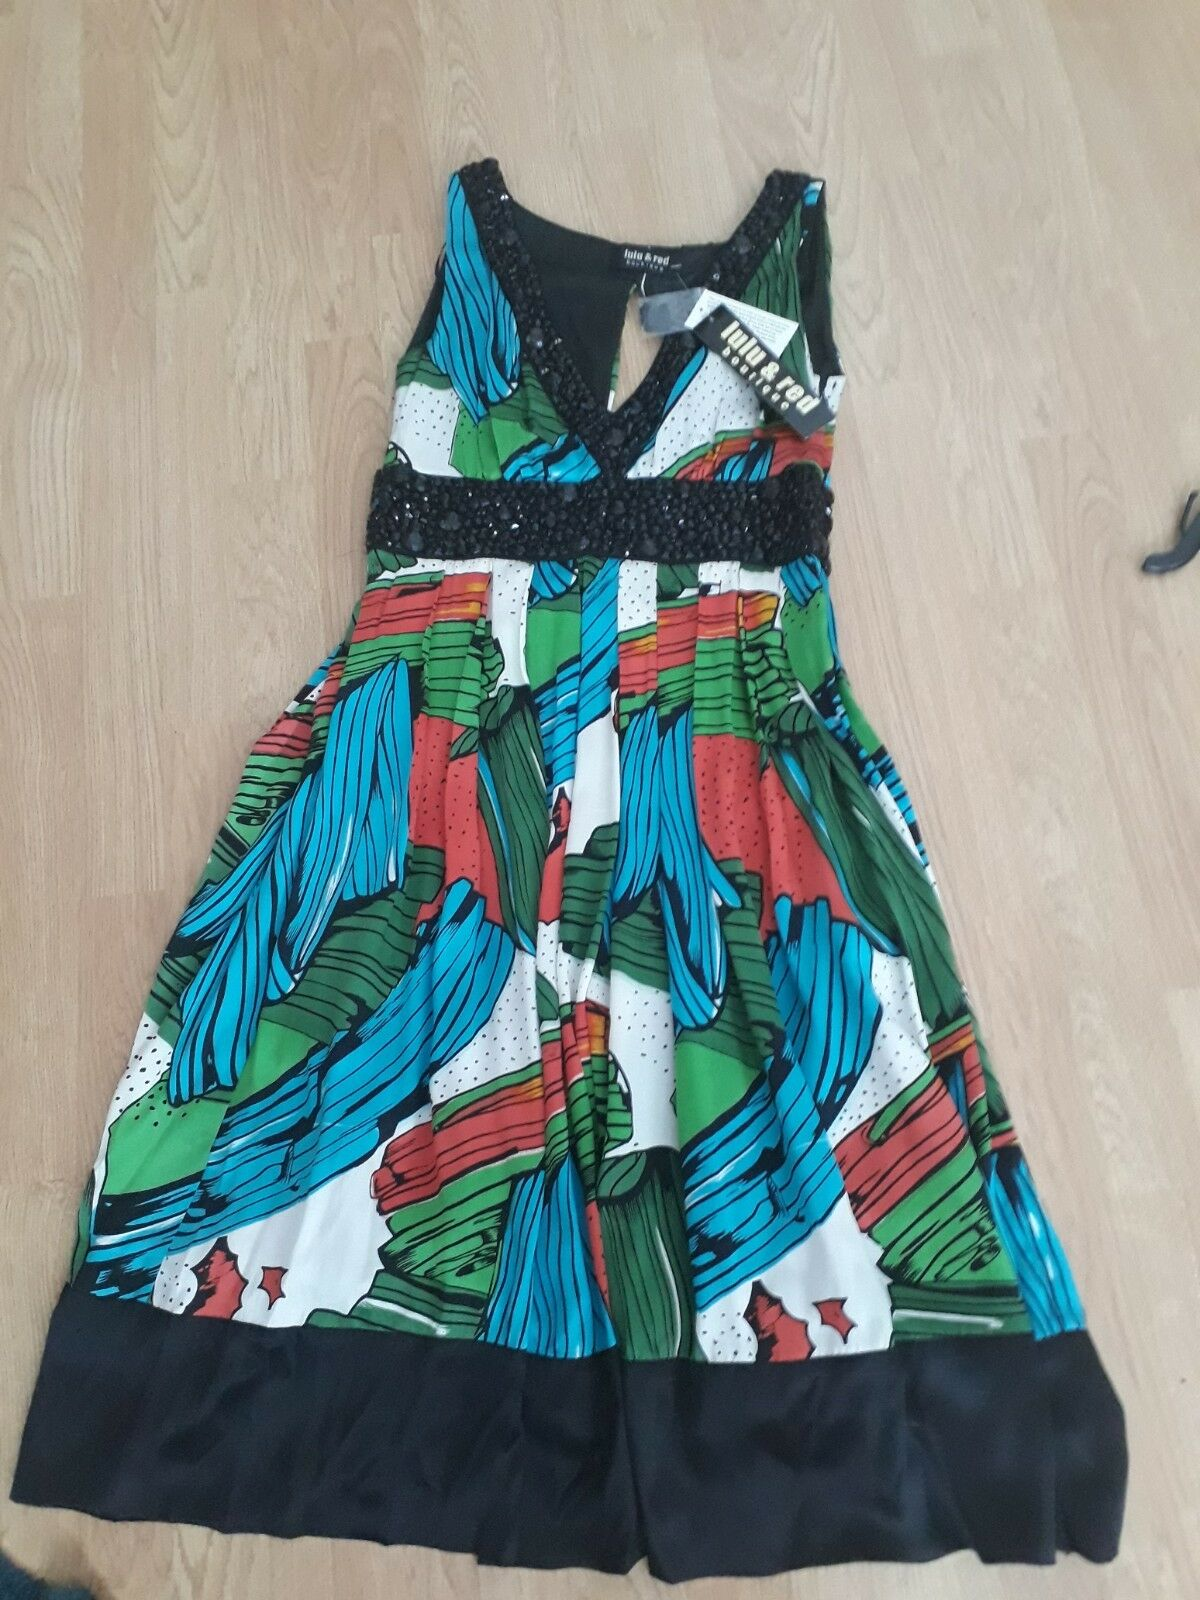 Lou lou and red boutique silk dress sz 10